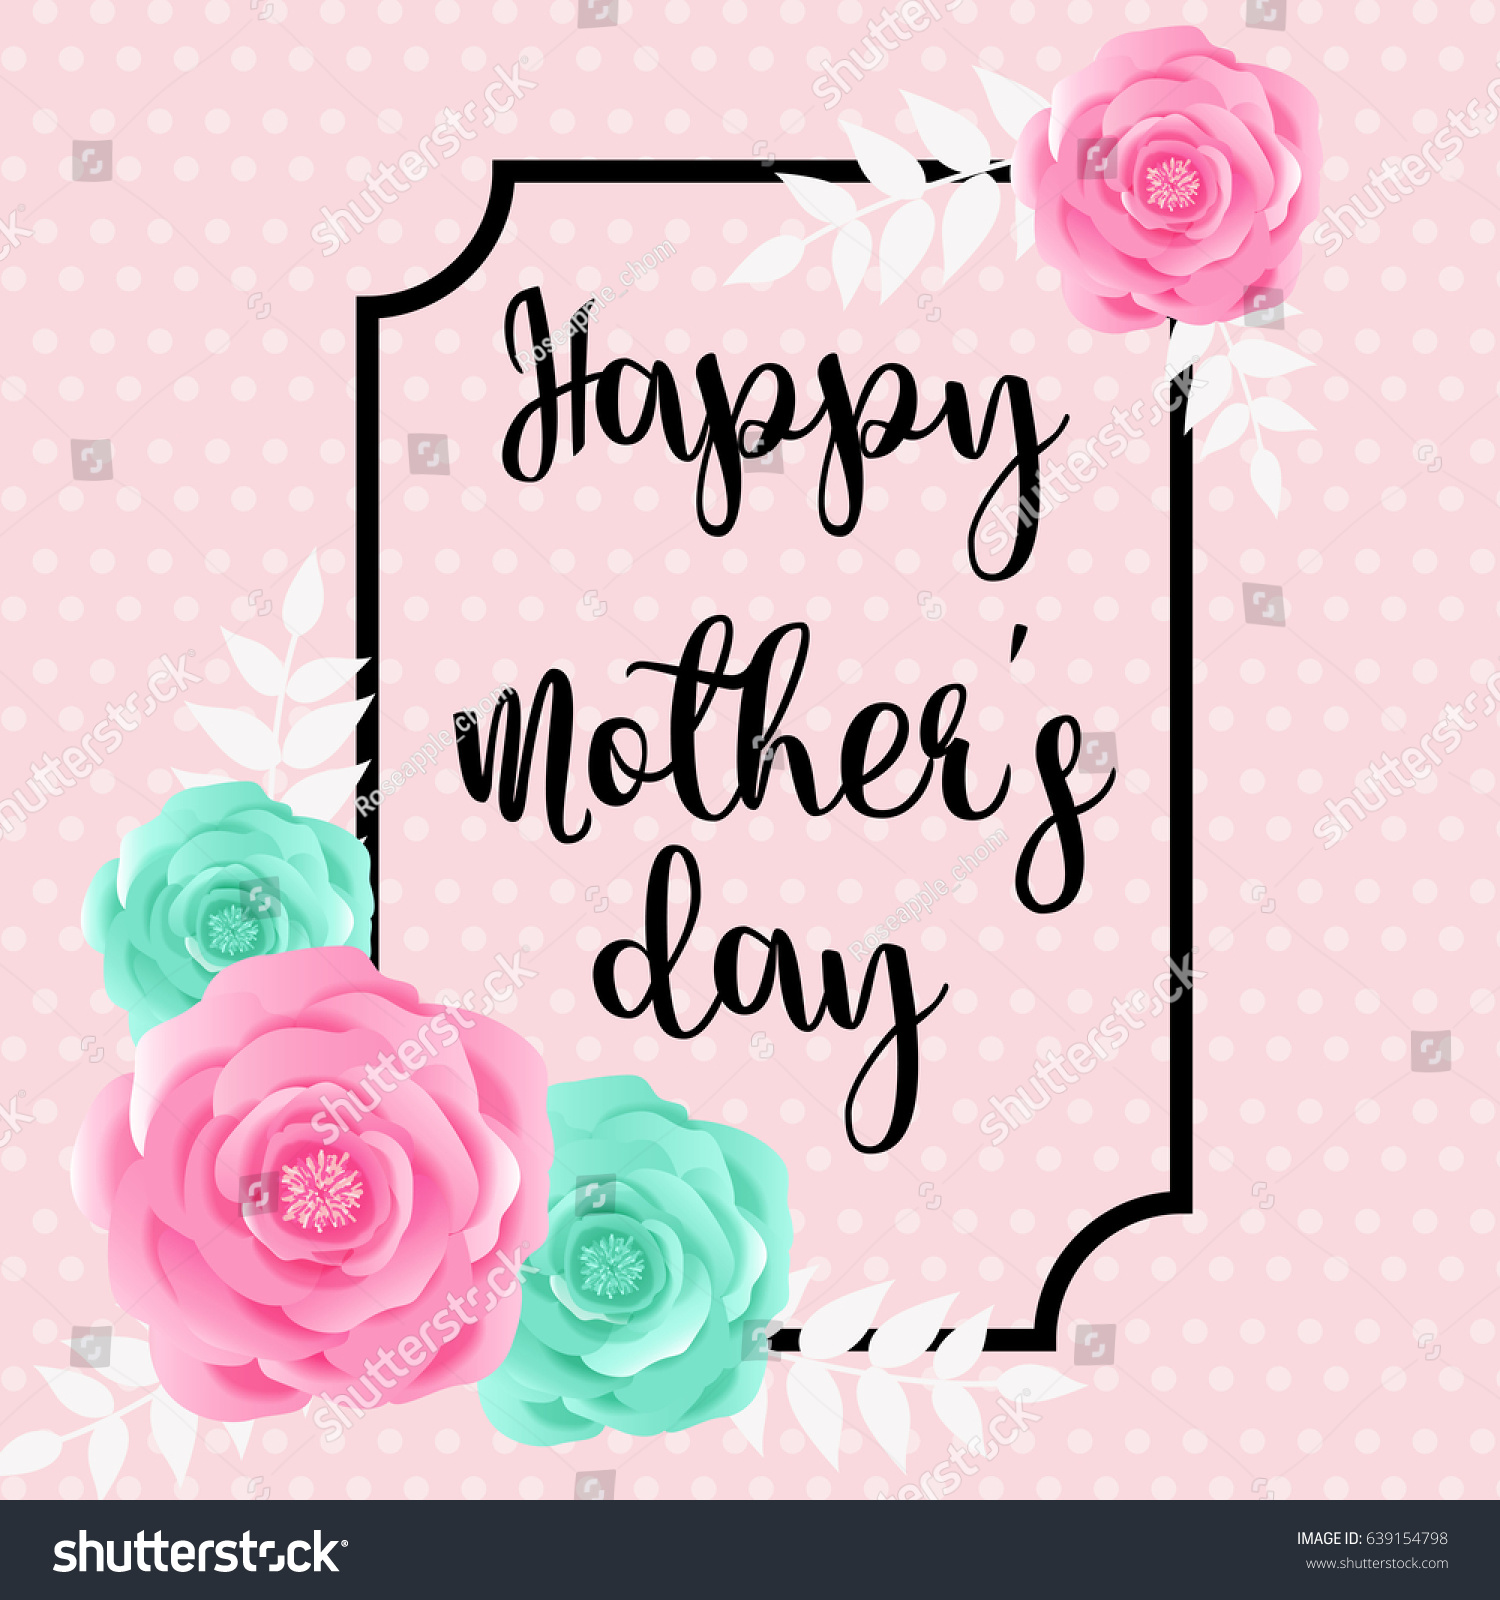 Happy mothers day greeting card blossom stock vector 639154798 happy mothers day greeting card with blossom flower kristyandbryce Image collections